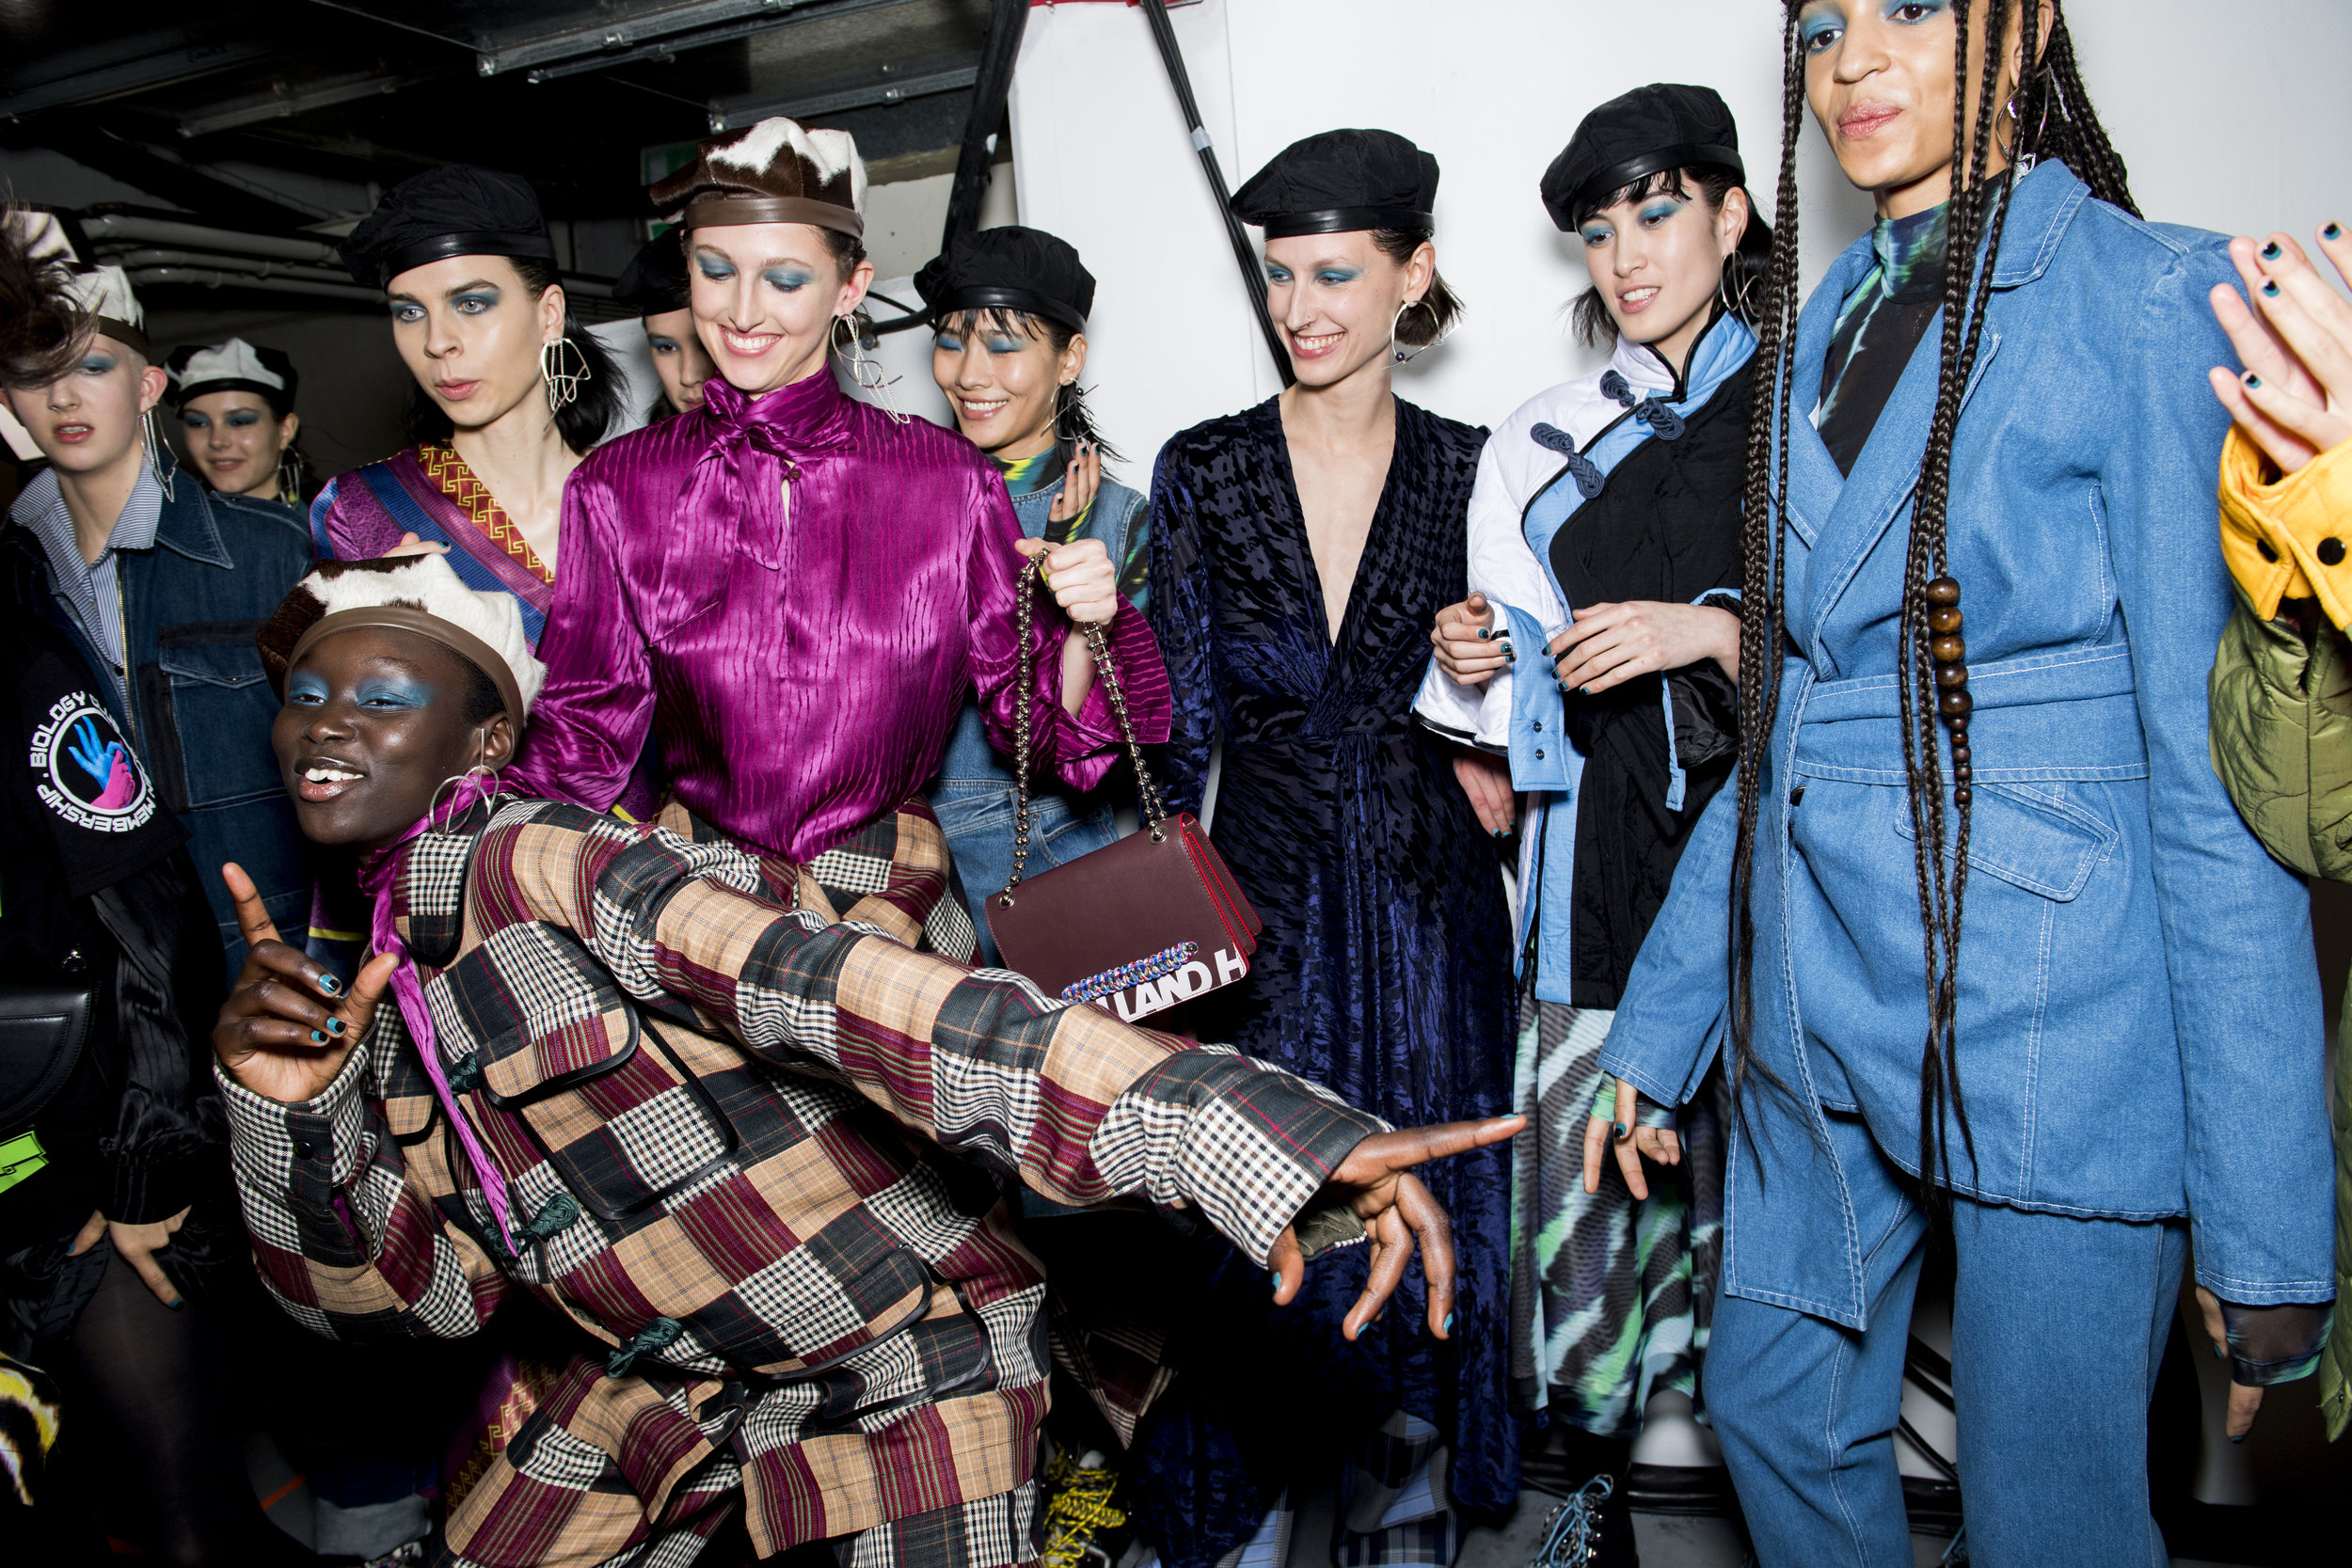 Backstage at House of Holland's AW19 runway show